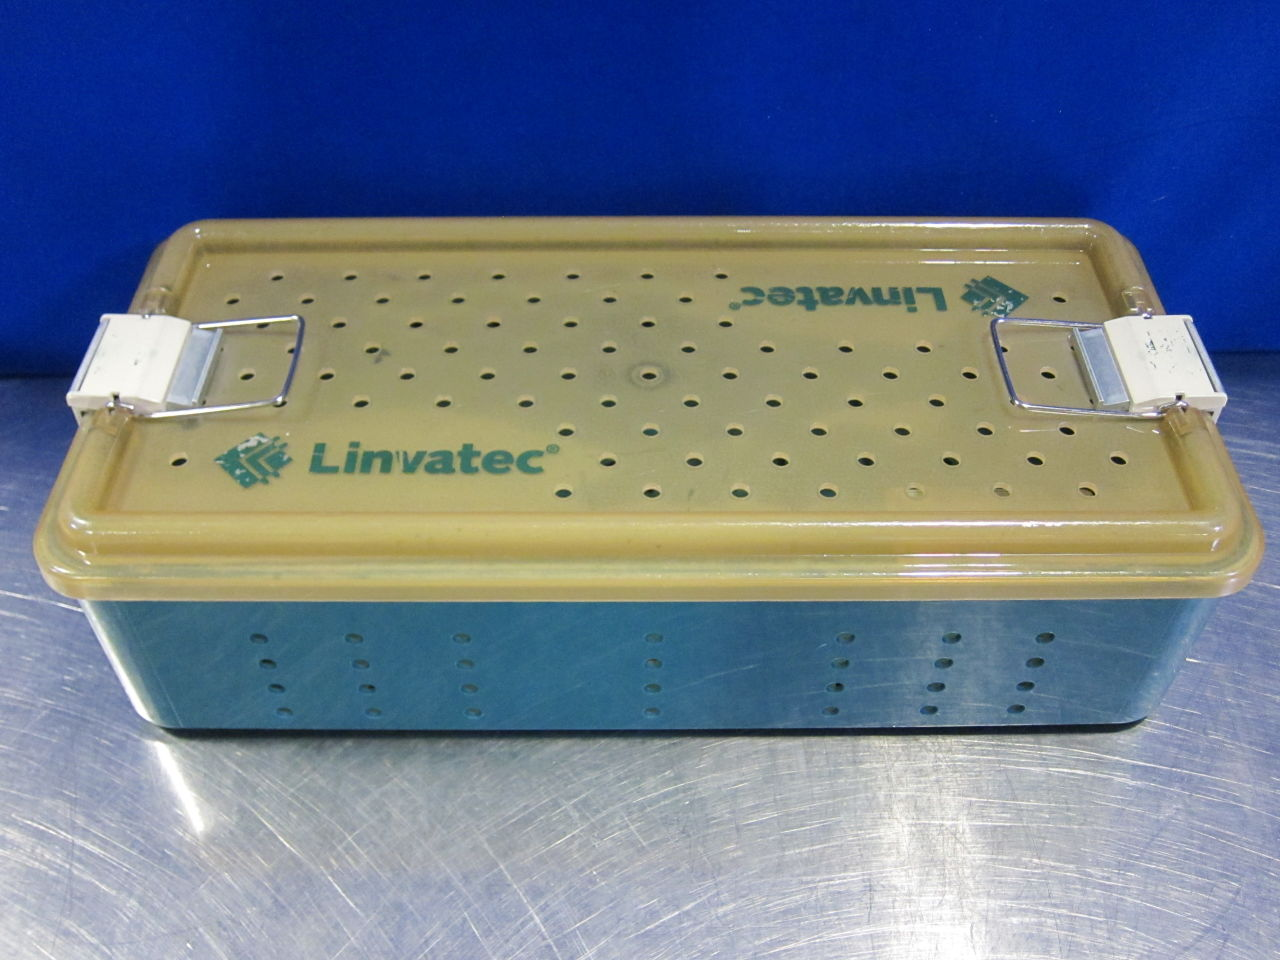 LINVATEC   - Lot of 5 Surgical Cases